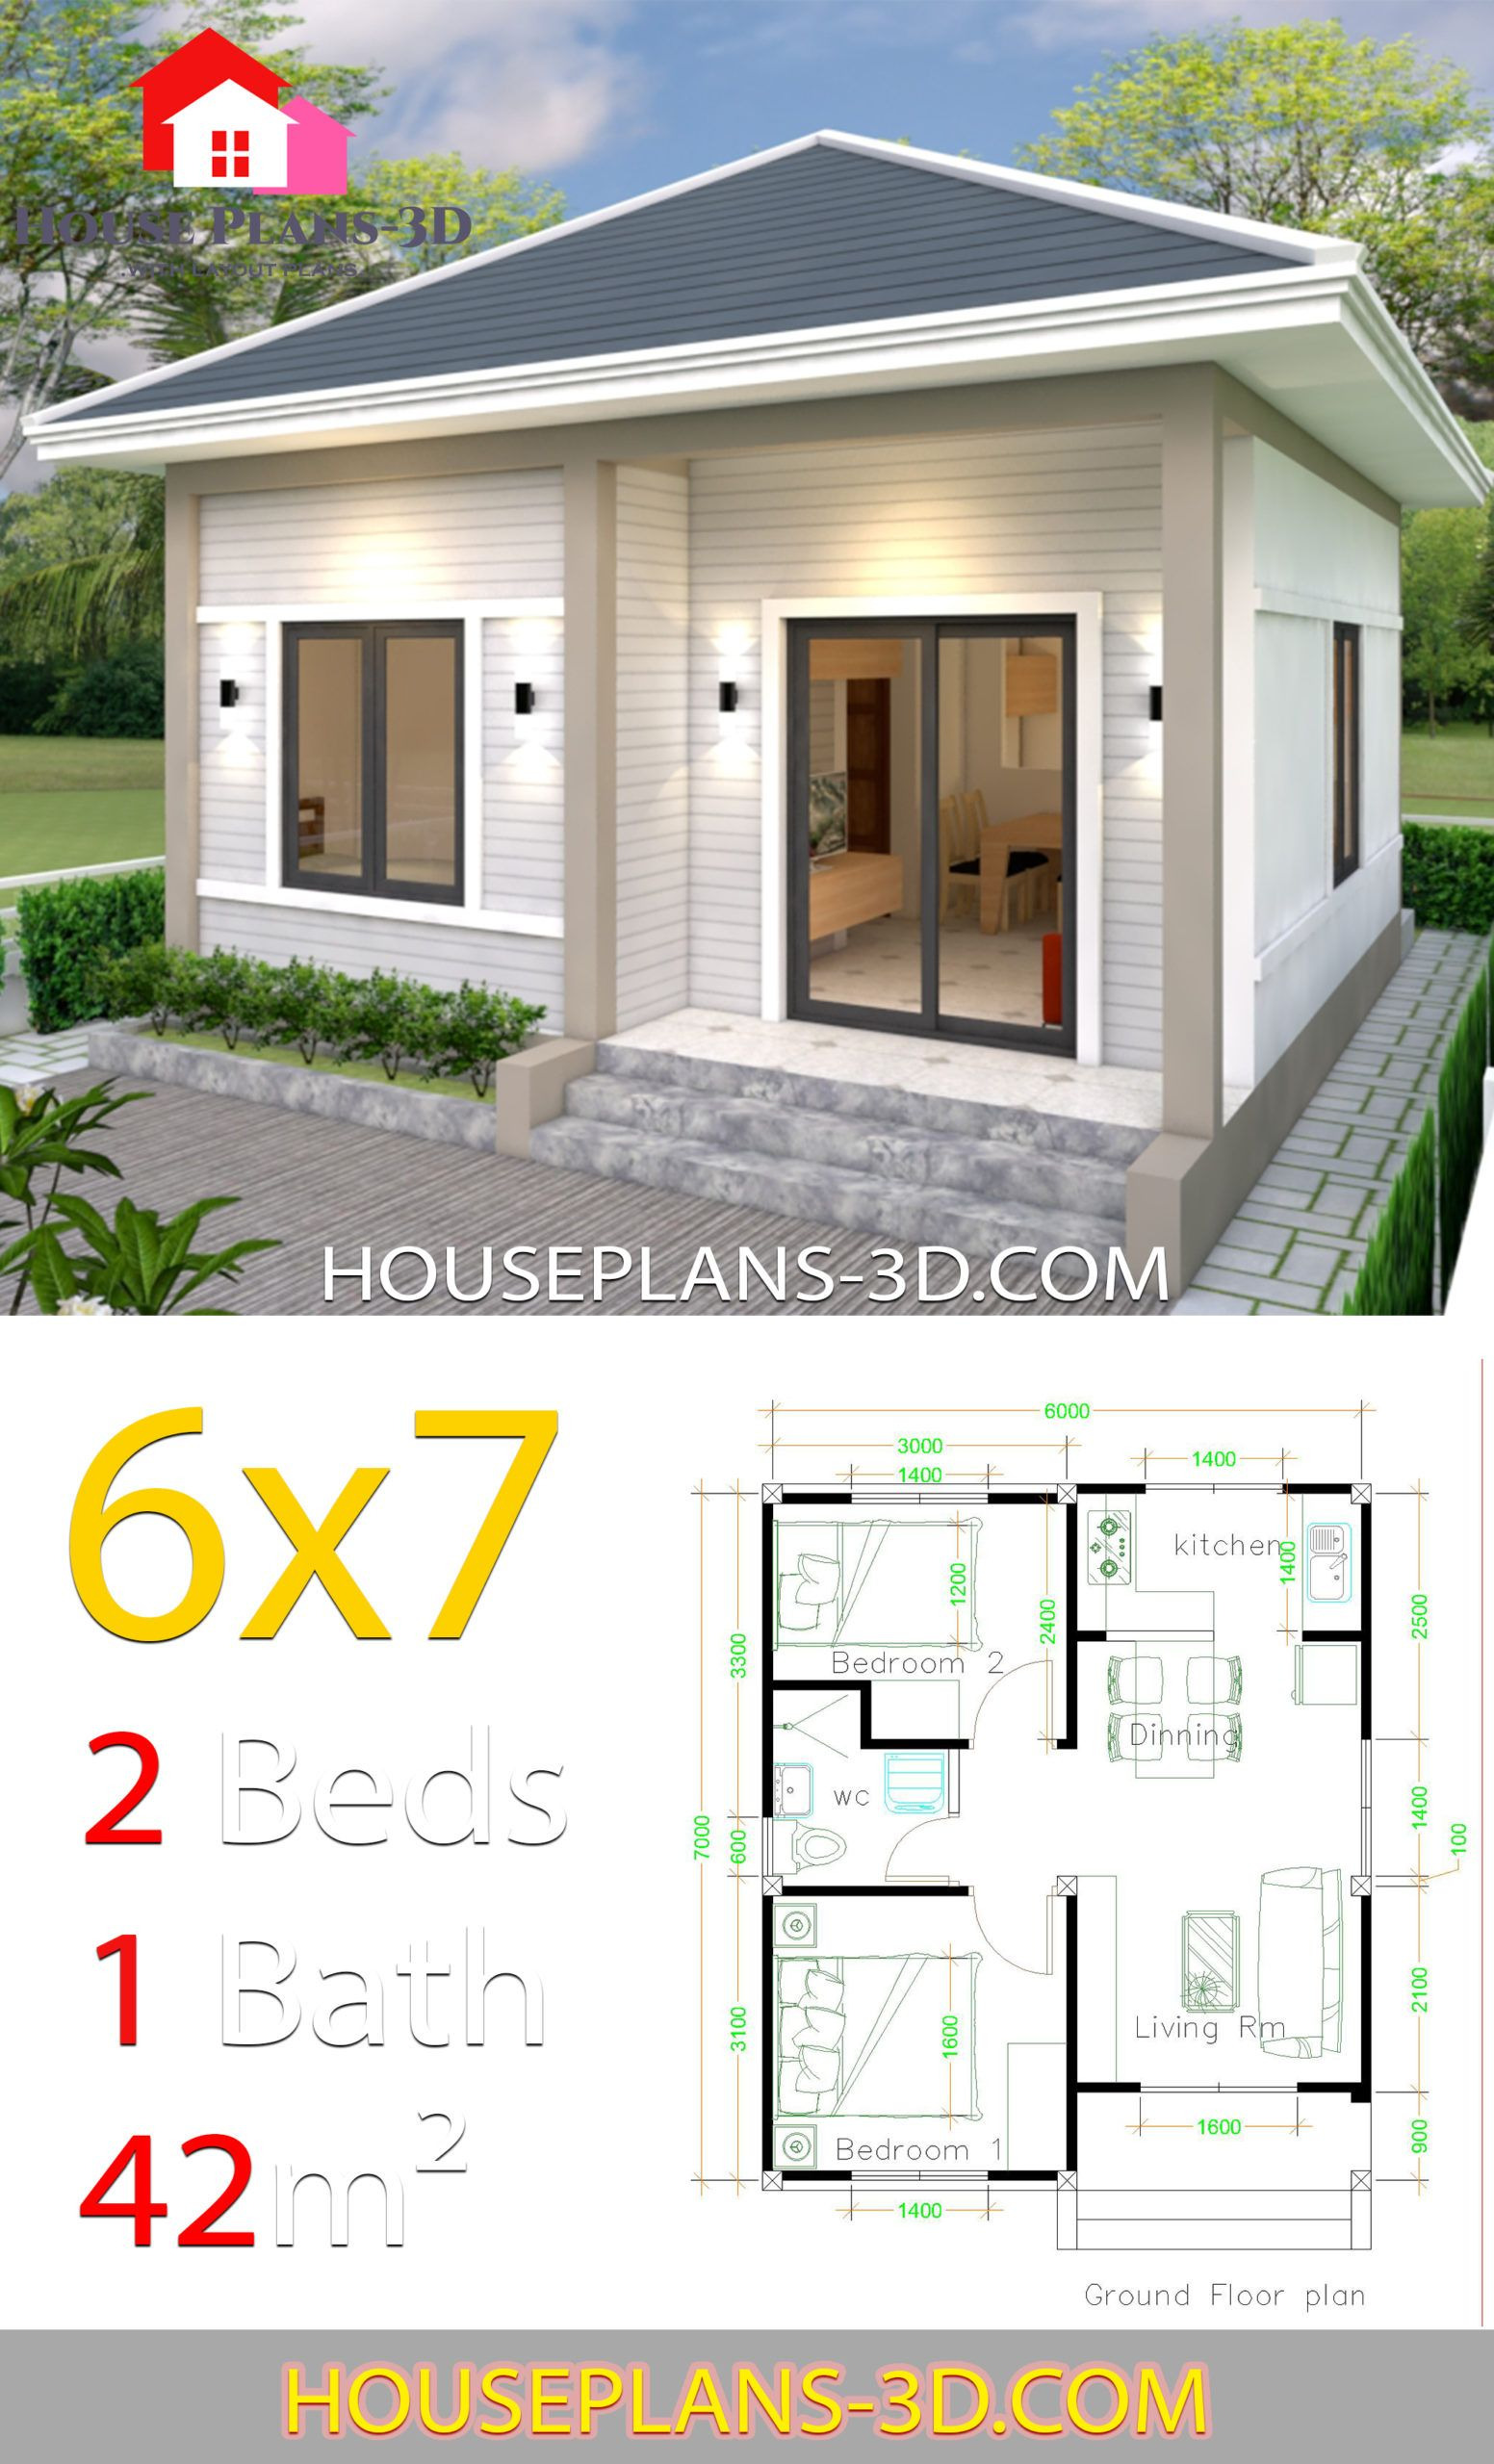 Simple House Design Images Best Of Simple House Plans 6x7 with 2 Bedrooms Hip Roof In 2020